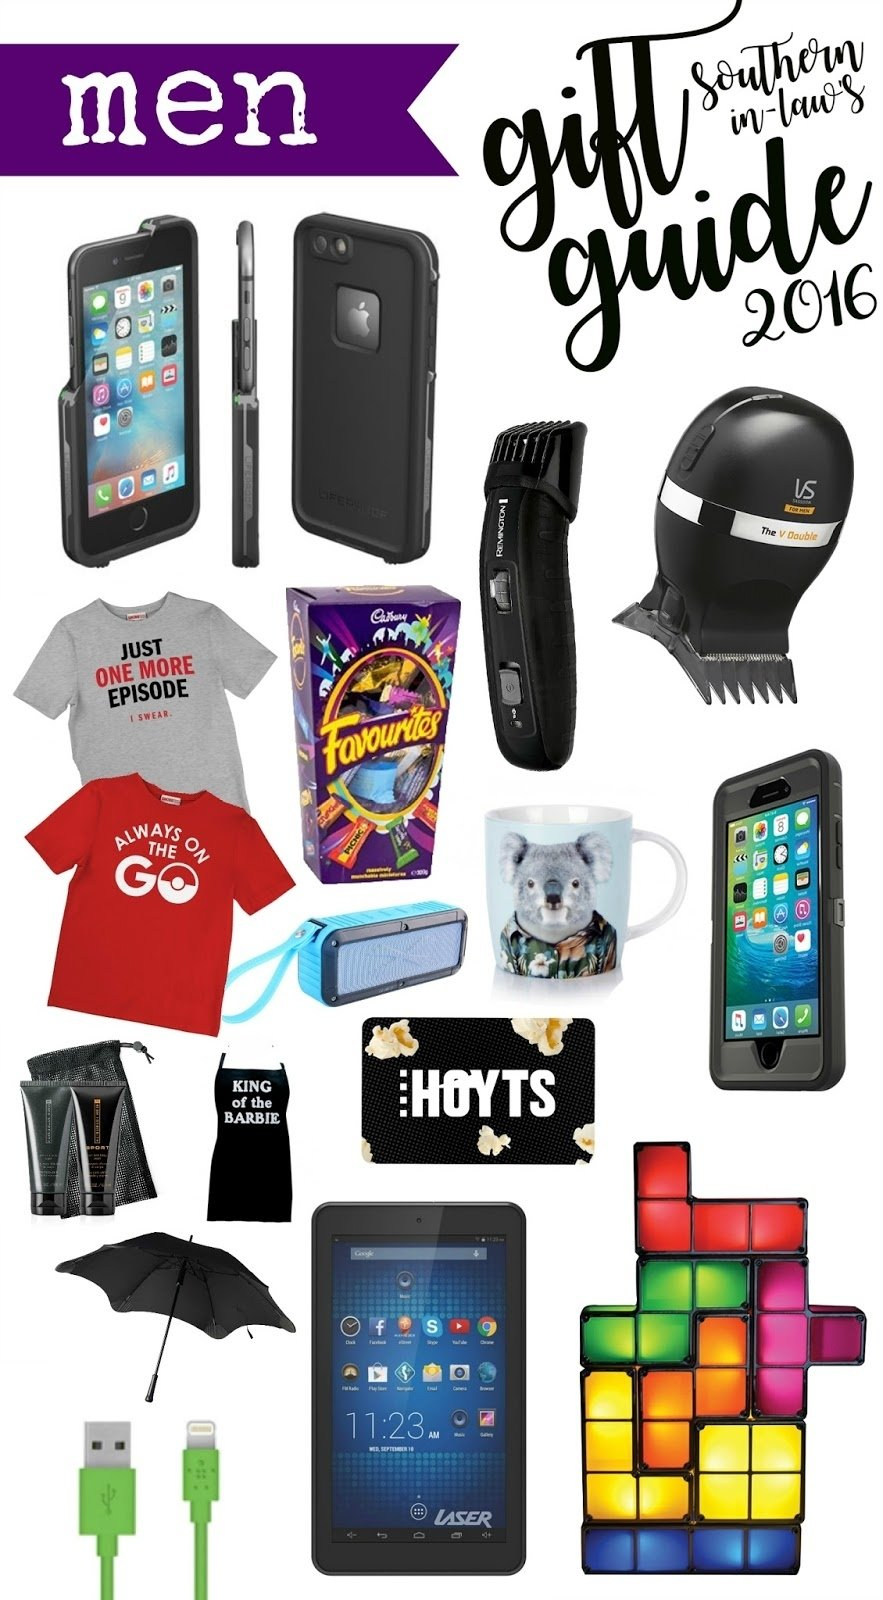 10 Great Gift Ideas For Brother In Law southern in law 2016 mens christmas gift guide 11